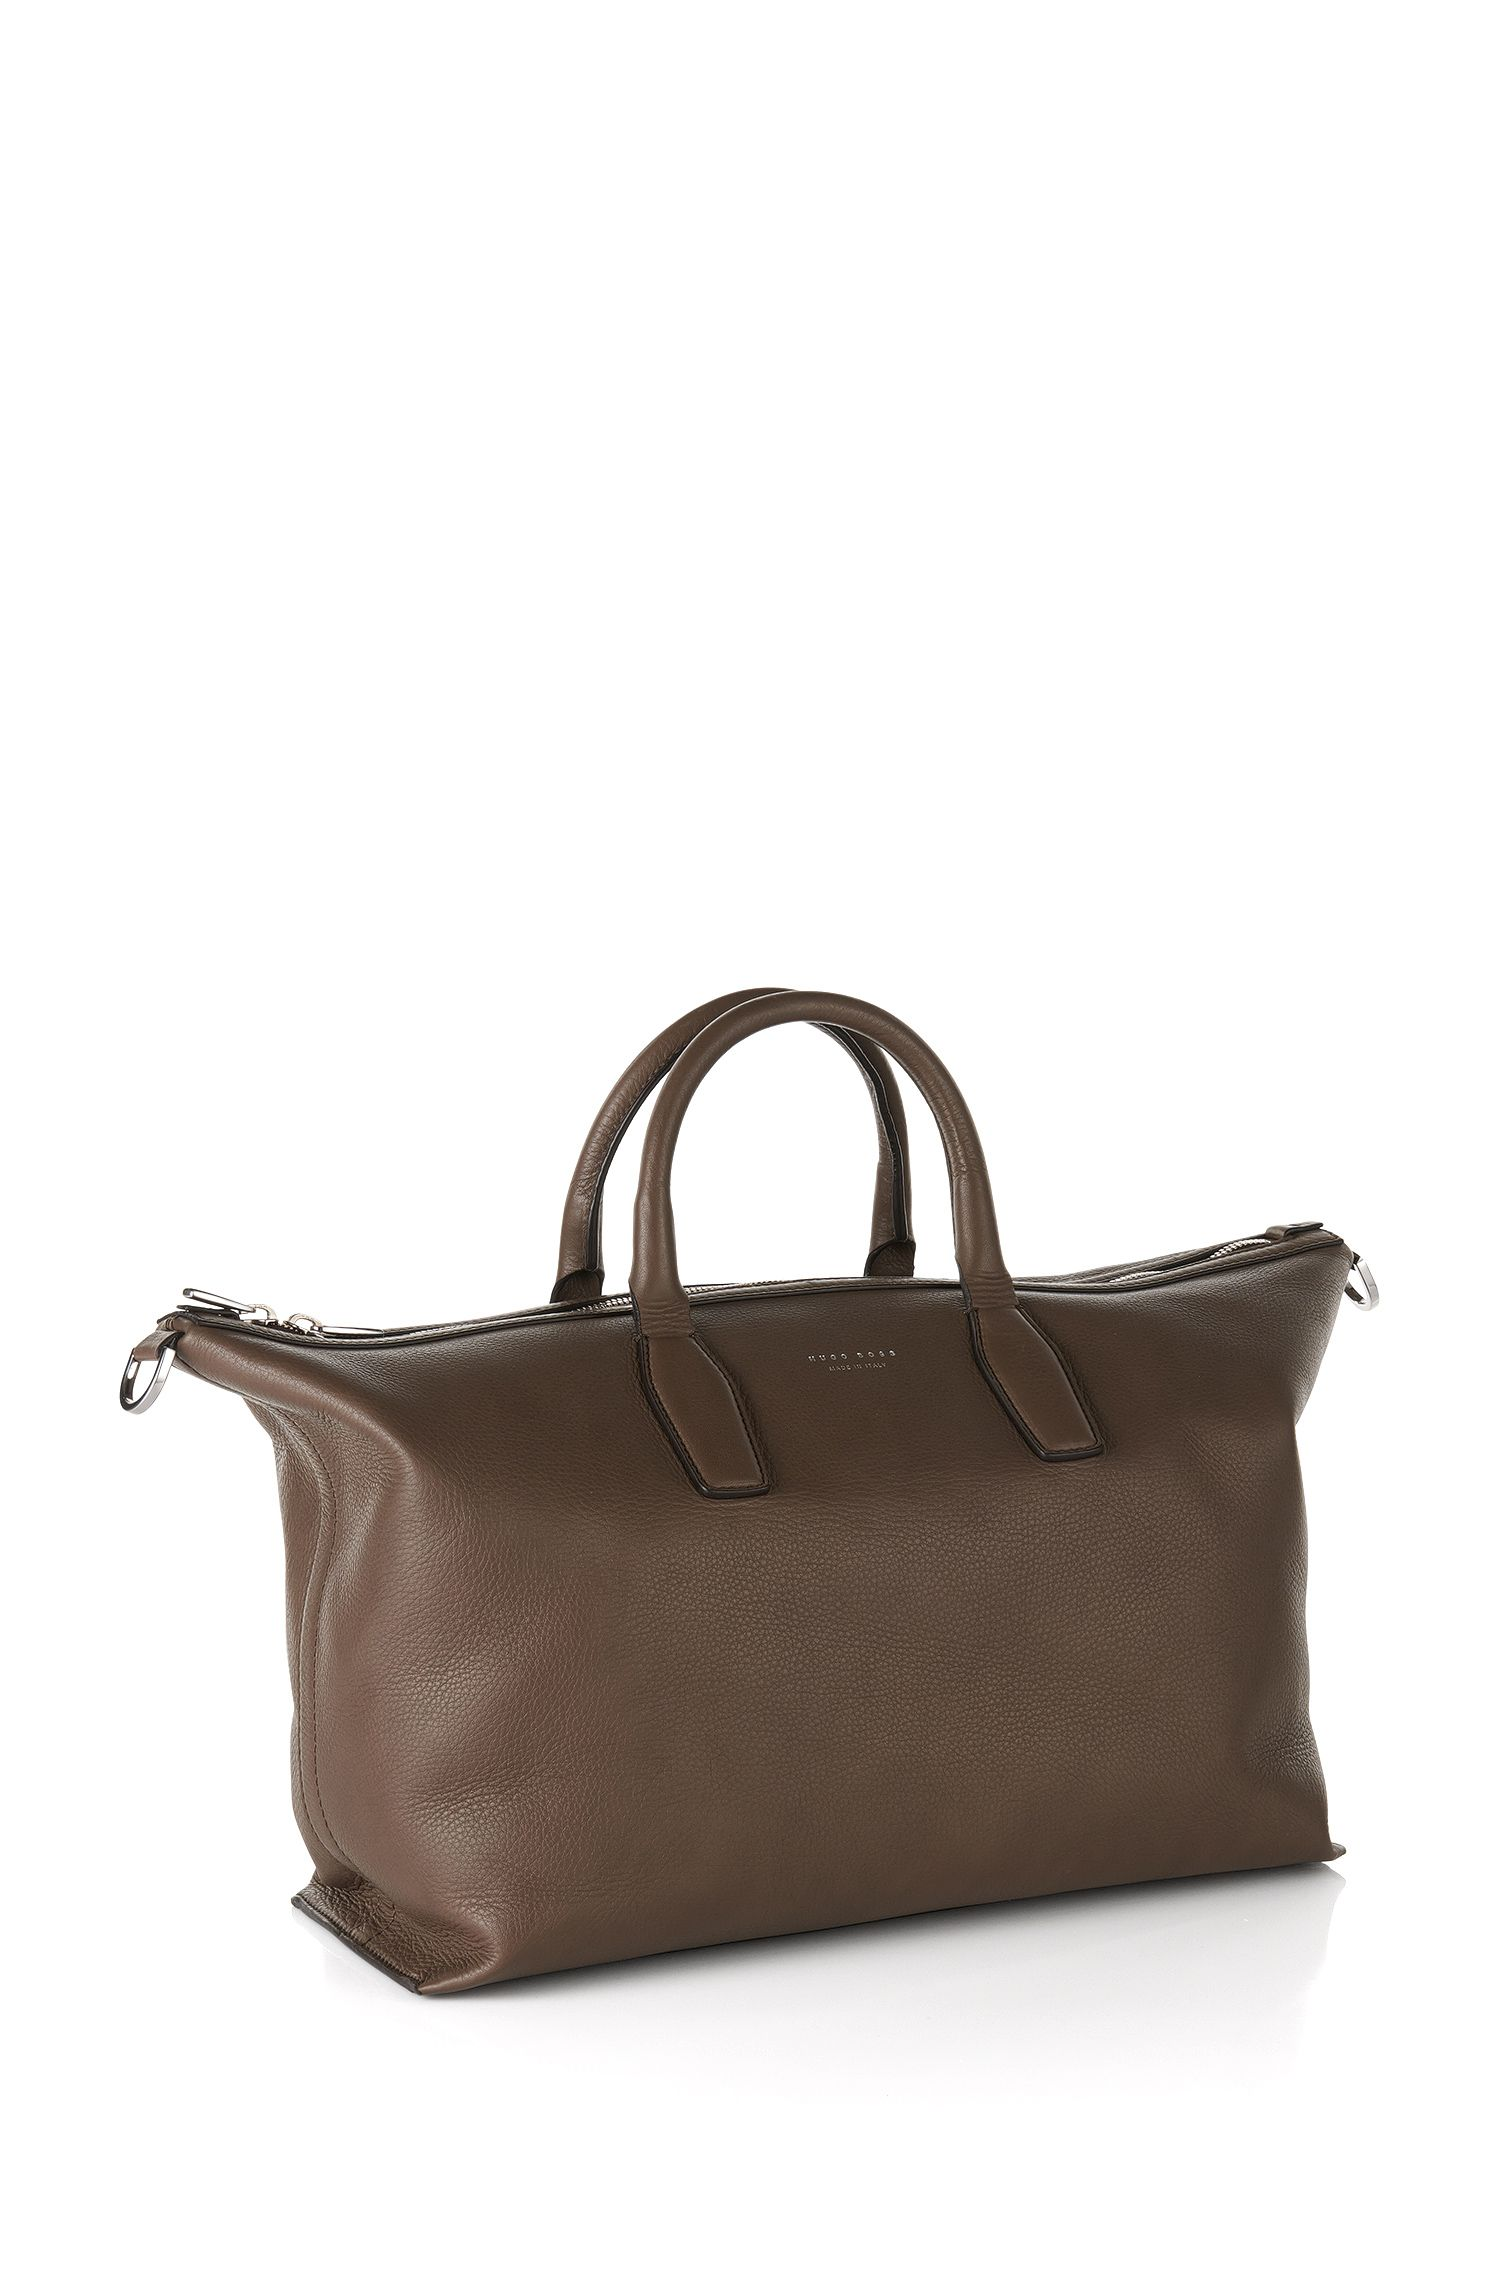 'Softy_Holdall' | Italian Leather Weekender Bag, Detachable Strap